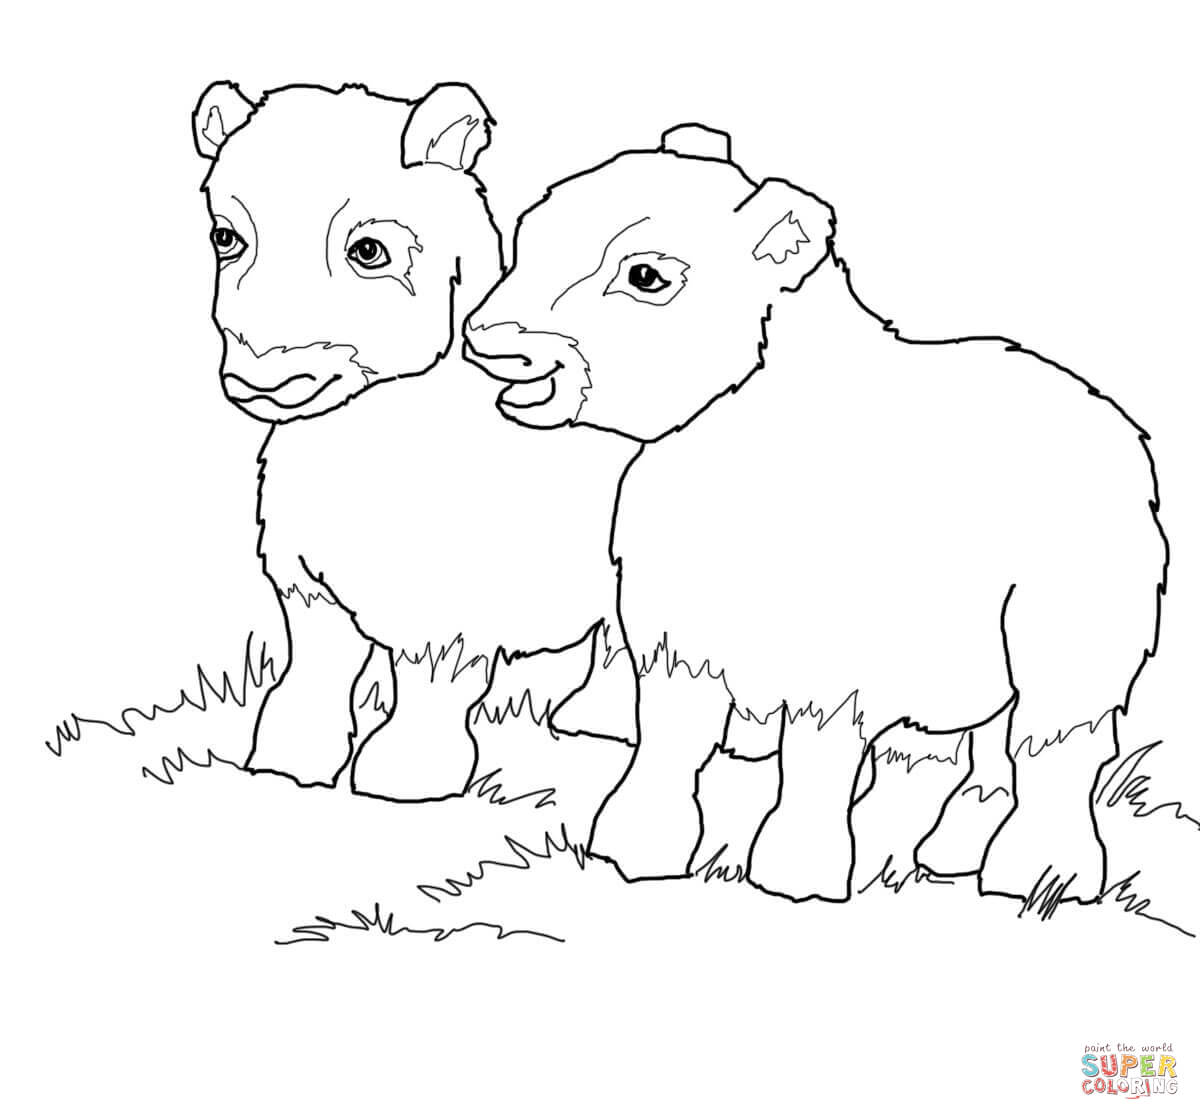 musk ox coloring page ox drawing at getdrawings free download coloring ox musk page